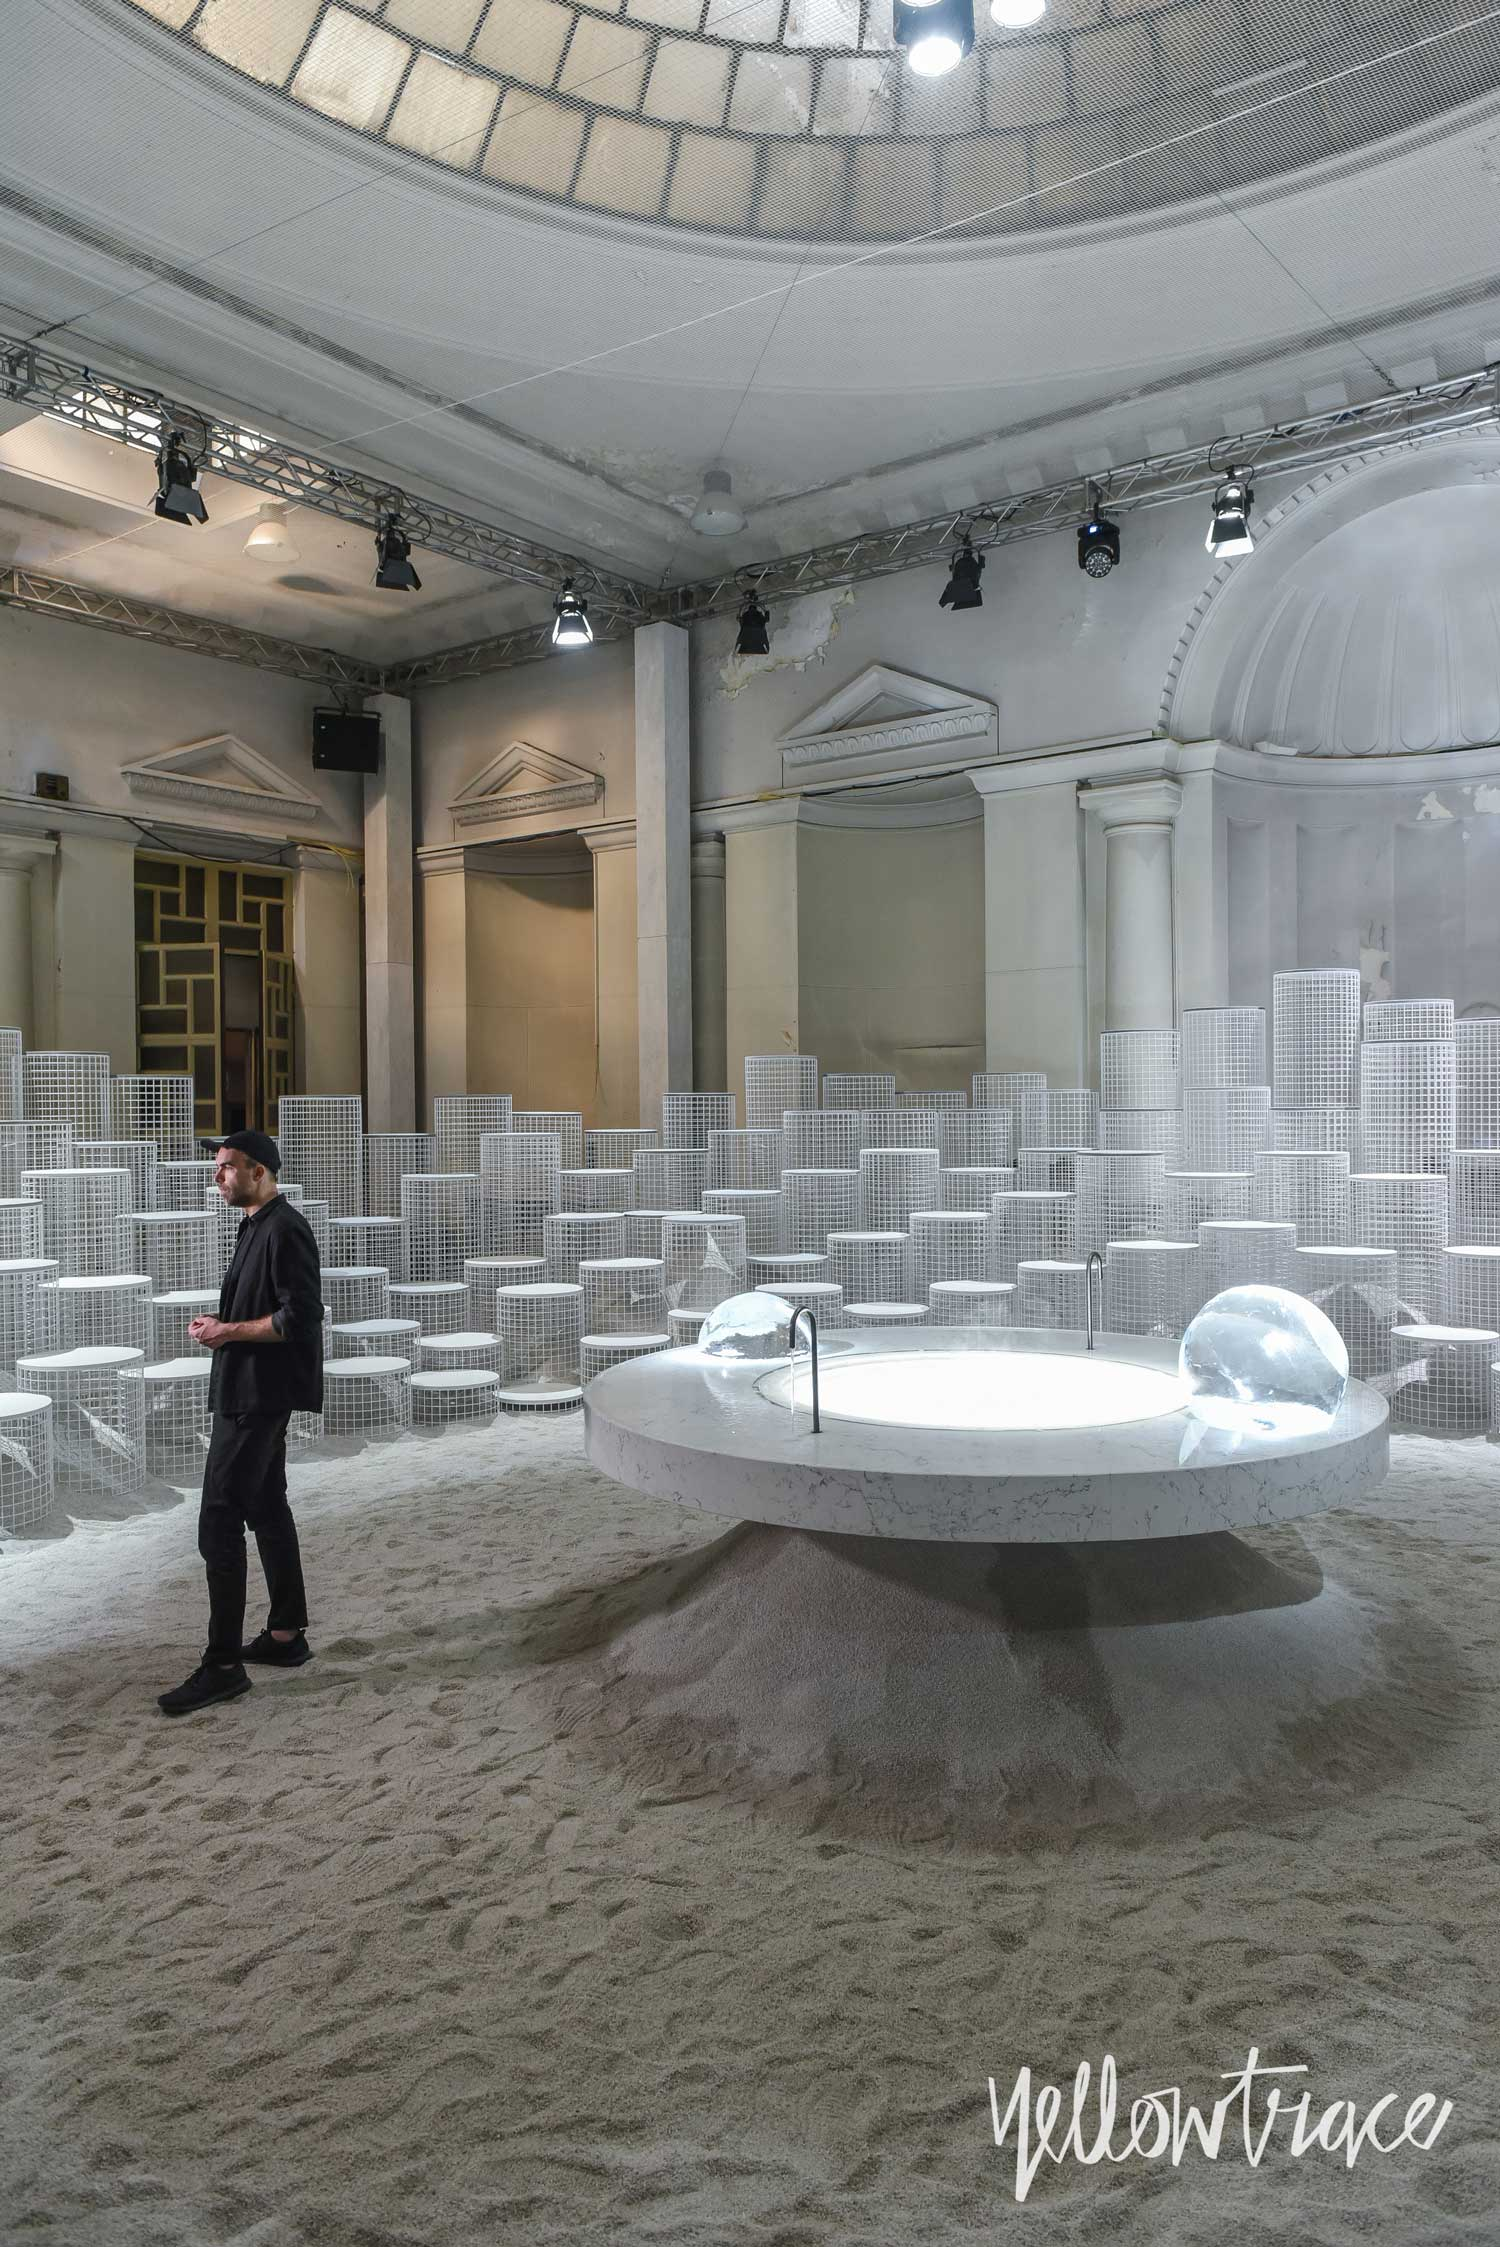 Milan Design Week 2018 Highlights, 'Altered States' by Snarkitecture for Caesarstone. Photo © Nick Hughes | #Milantrace2018